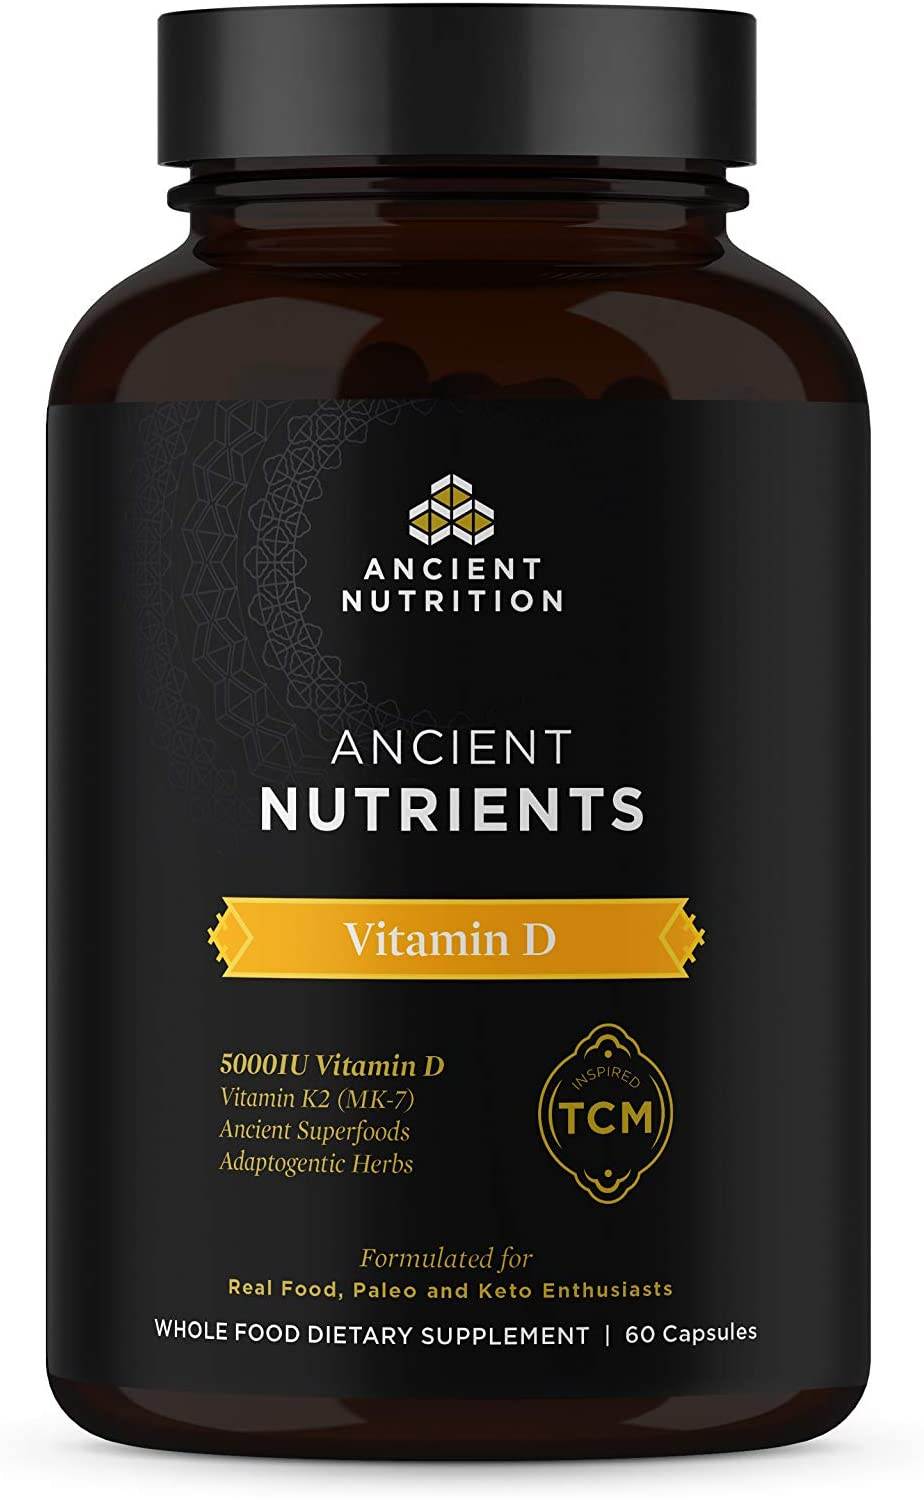 Ancient Nutrition, Ancient Nutrients Vitamin D - 5,000 IU Vitamin D, Adaptogenic Herbs, Enzyme Activated, Paleo & Keto Friendly, 60 Capsules